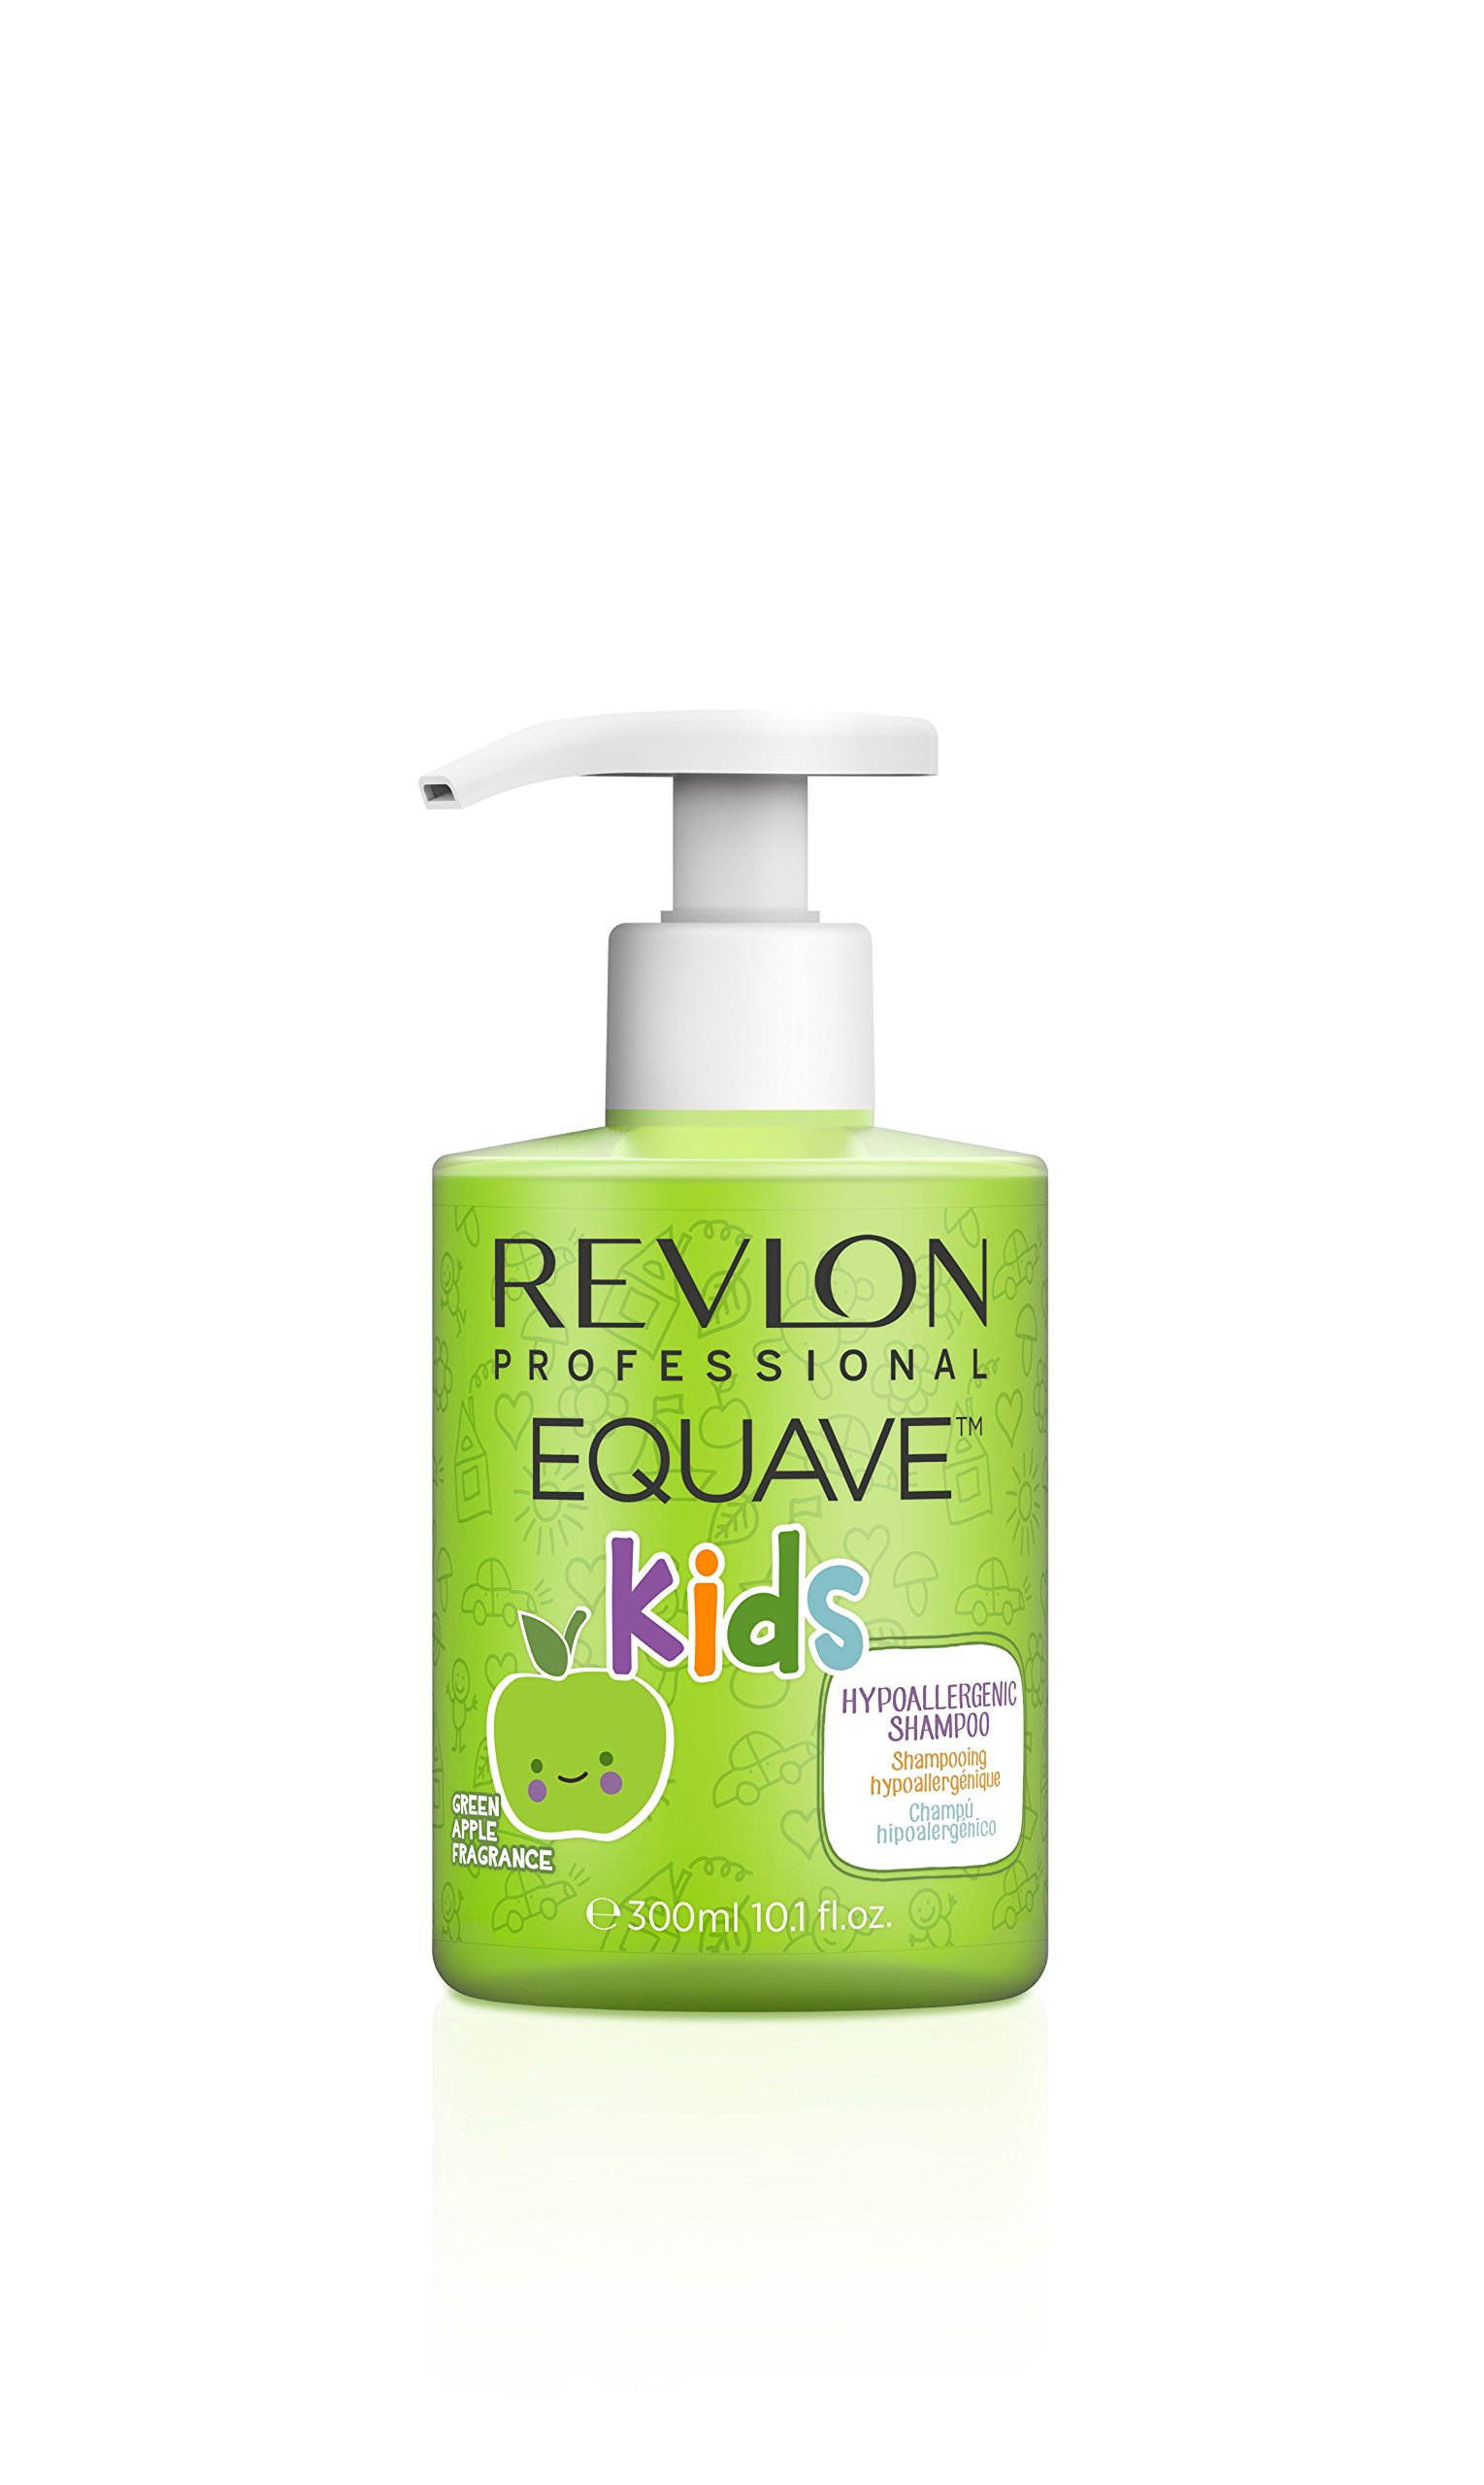 Revlon Equave Champú 2 en 1 - 300 ml product image